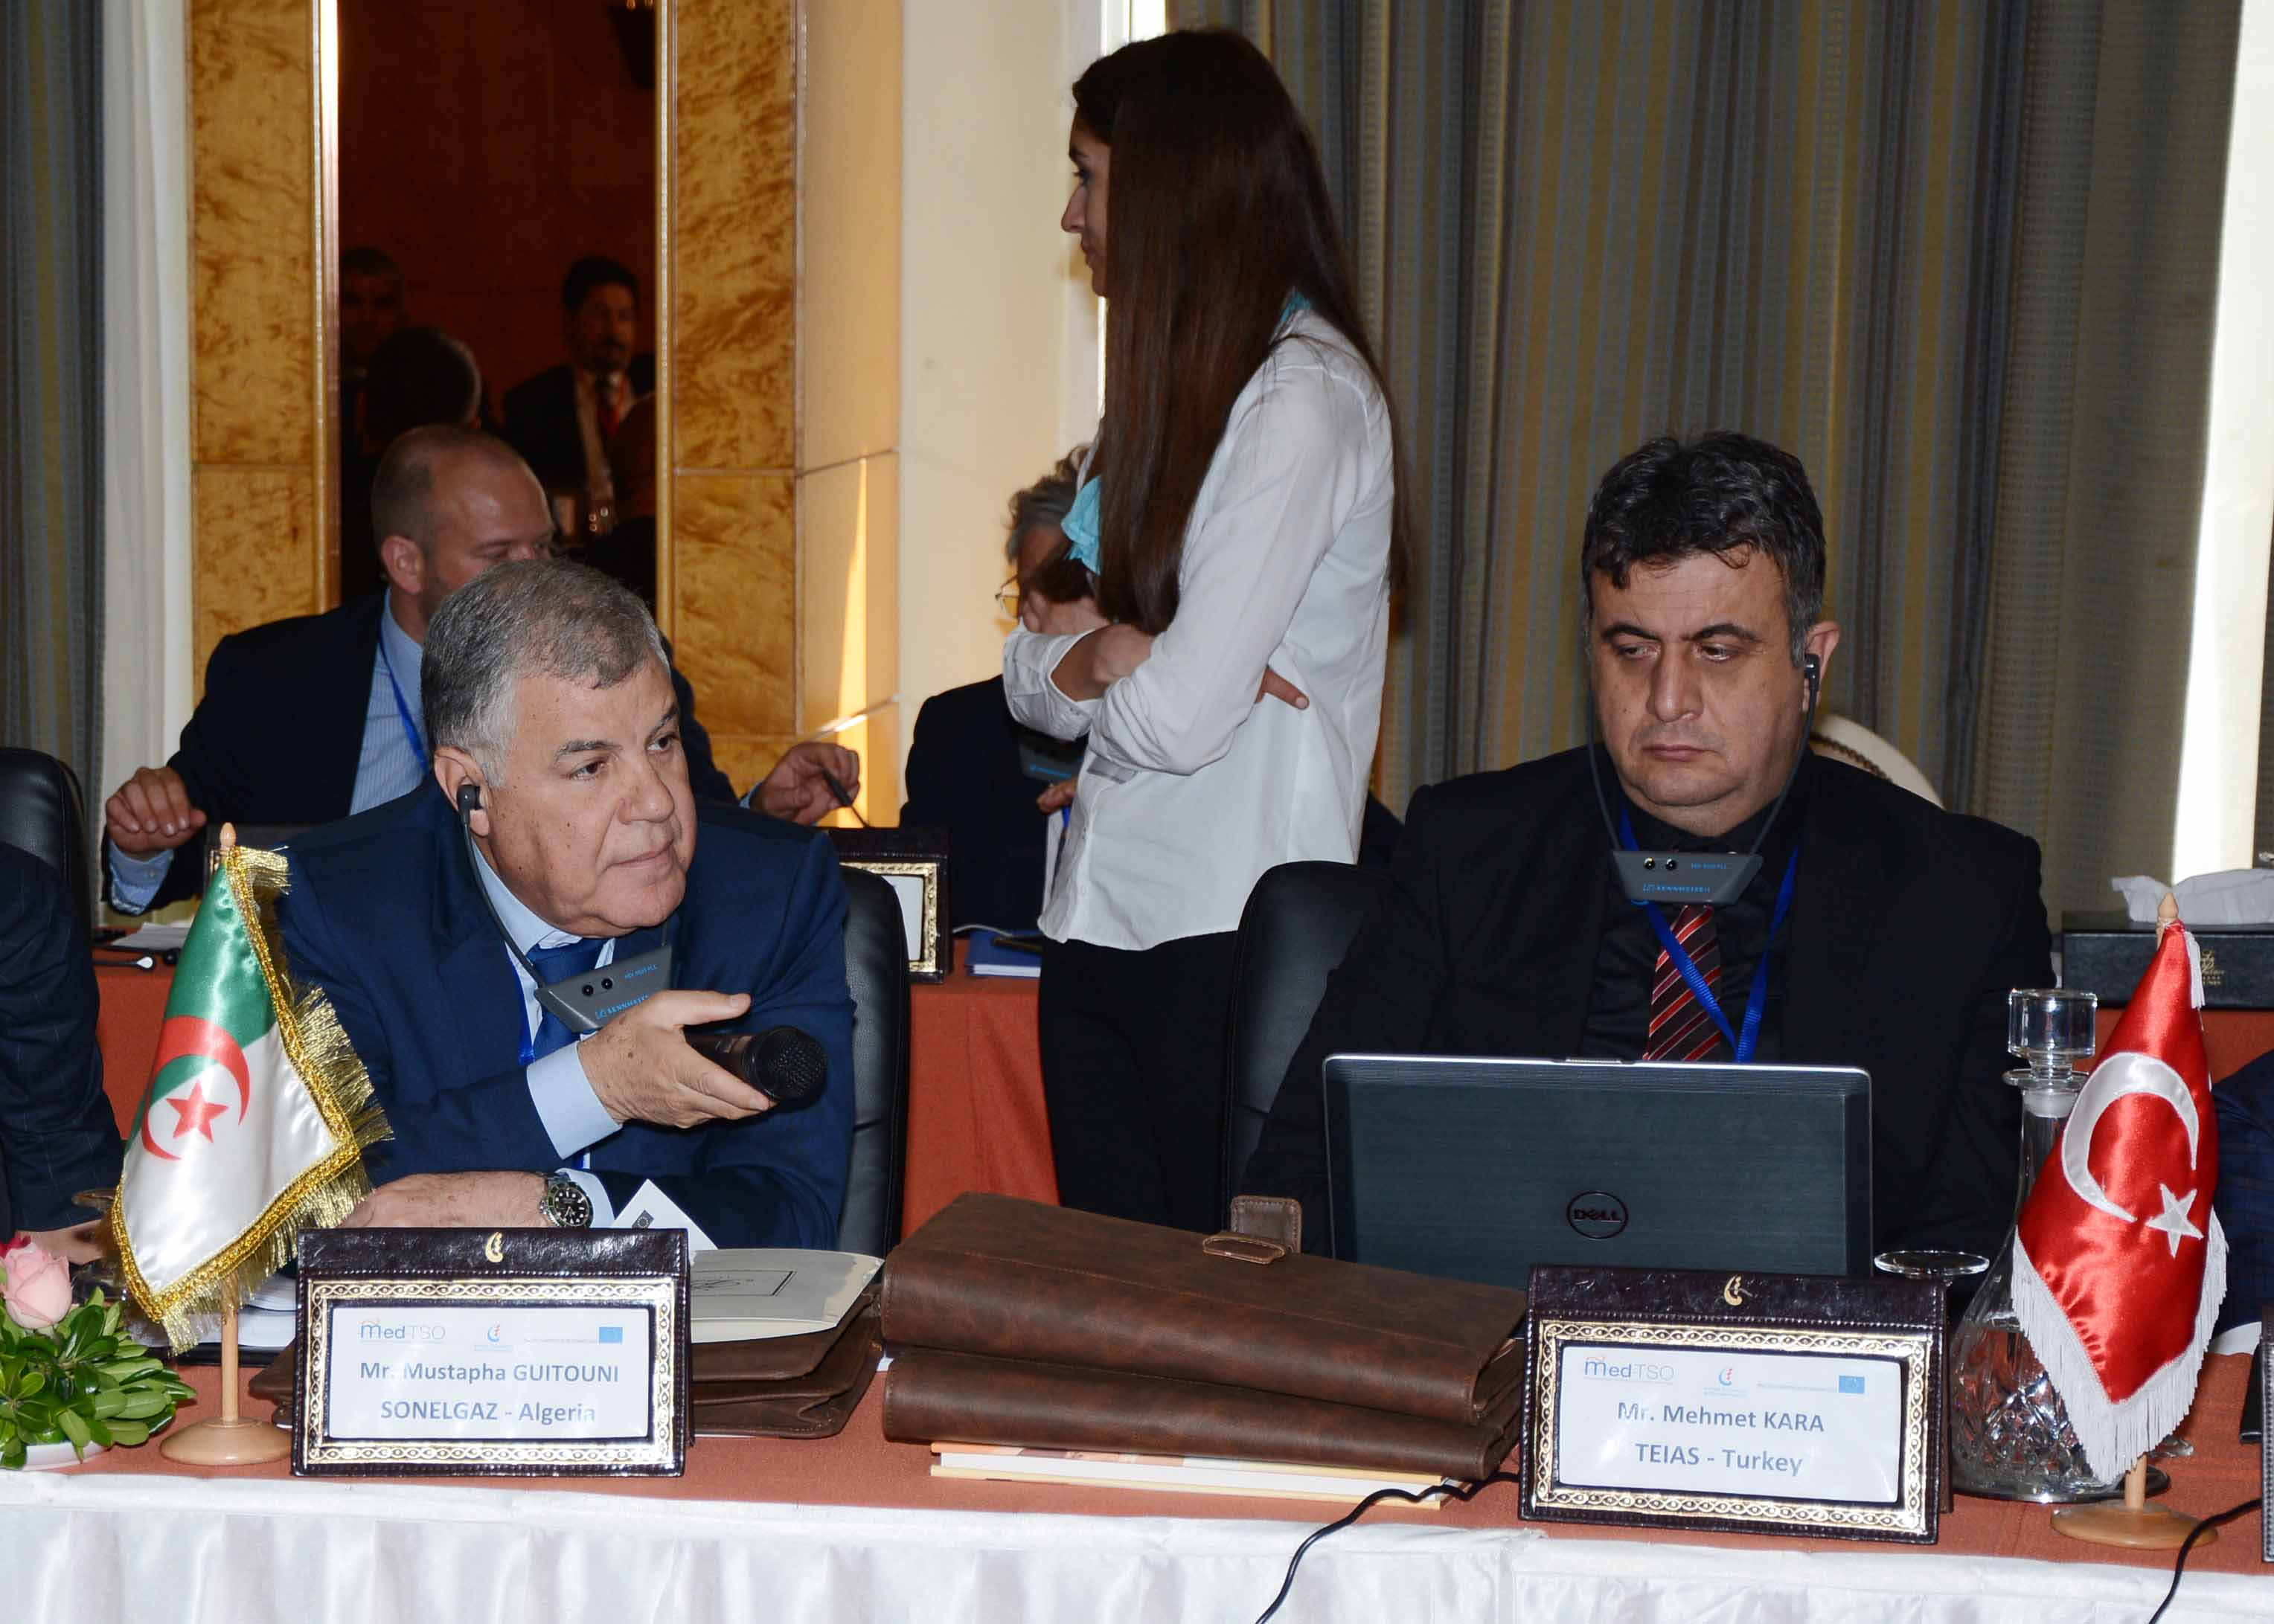 General Assembly - Mr. Guitouni (CEO of SONELGAZ) and Mr. Kara (TEIAS)